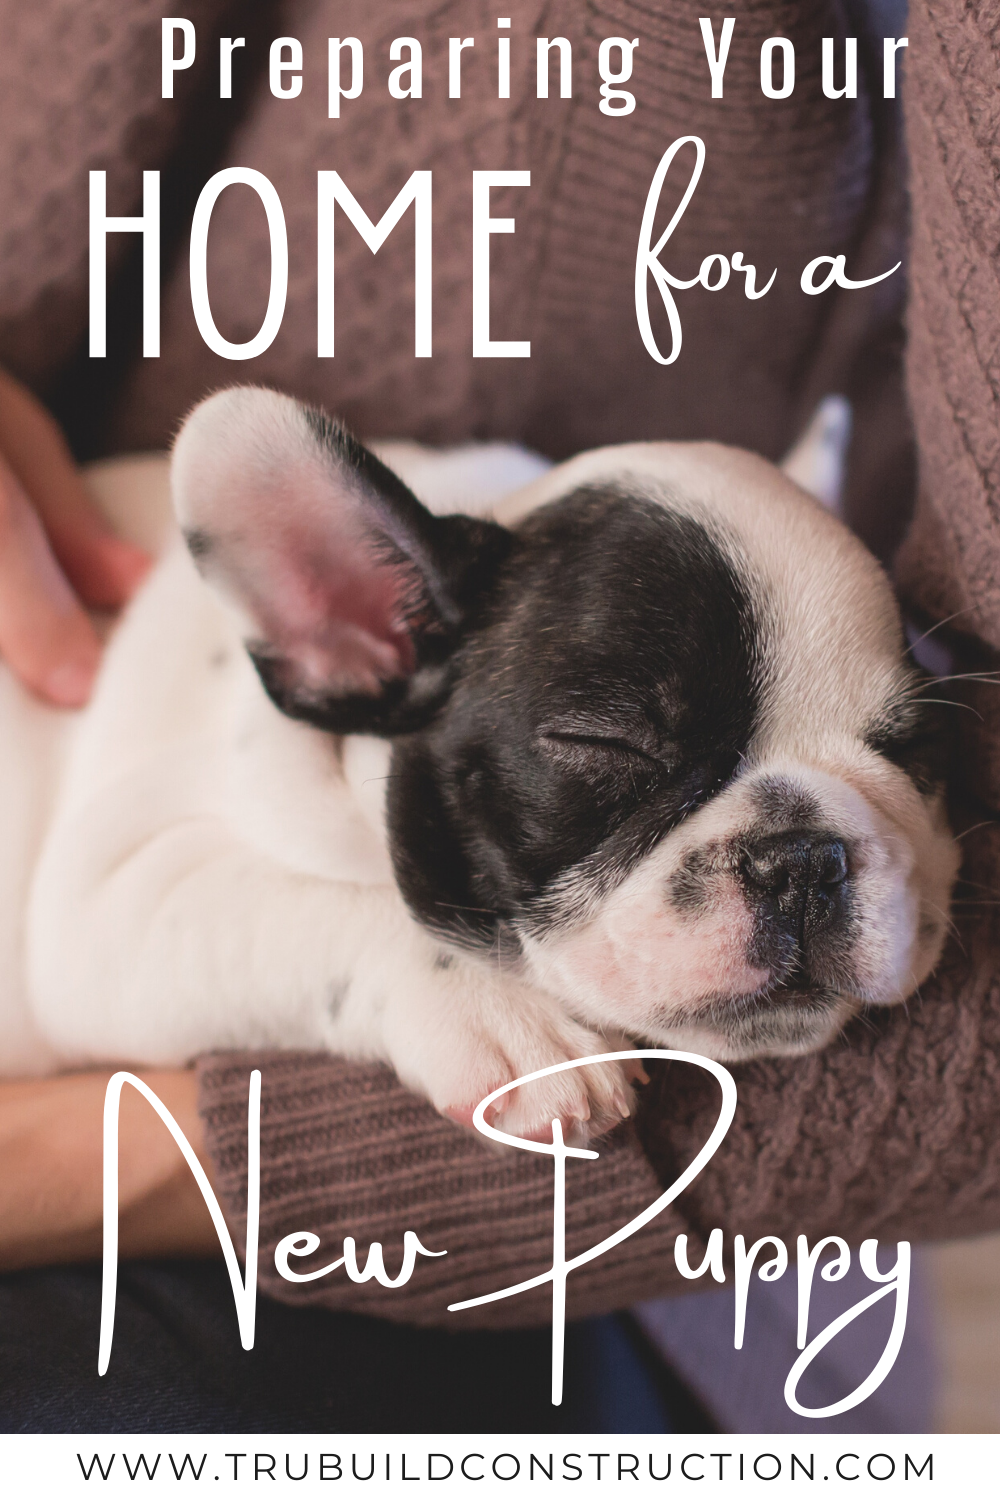 12 Things You Need To Get Your Home Ready For A New Puppy Trubuild Construction In 2020 New Puppy Pet Websites Puppies